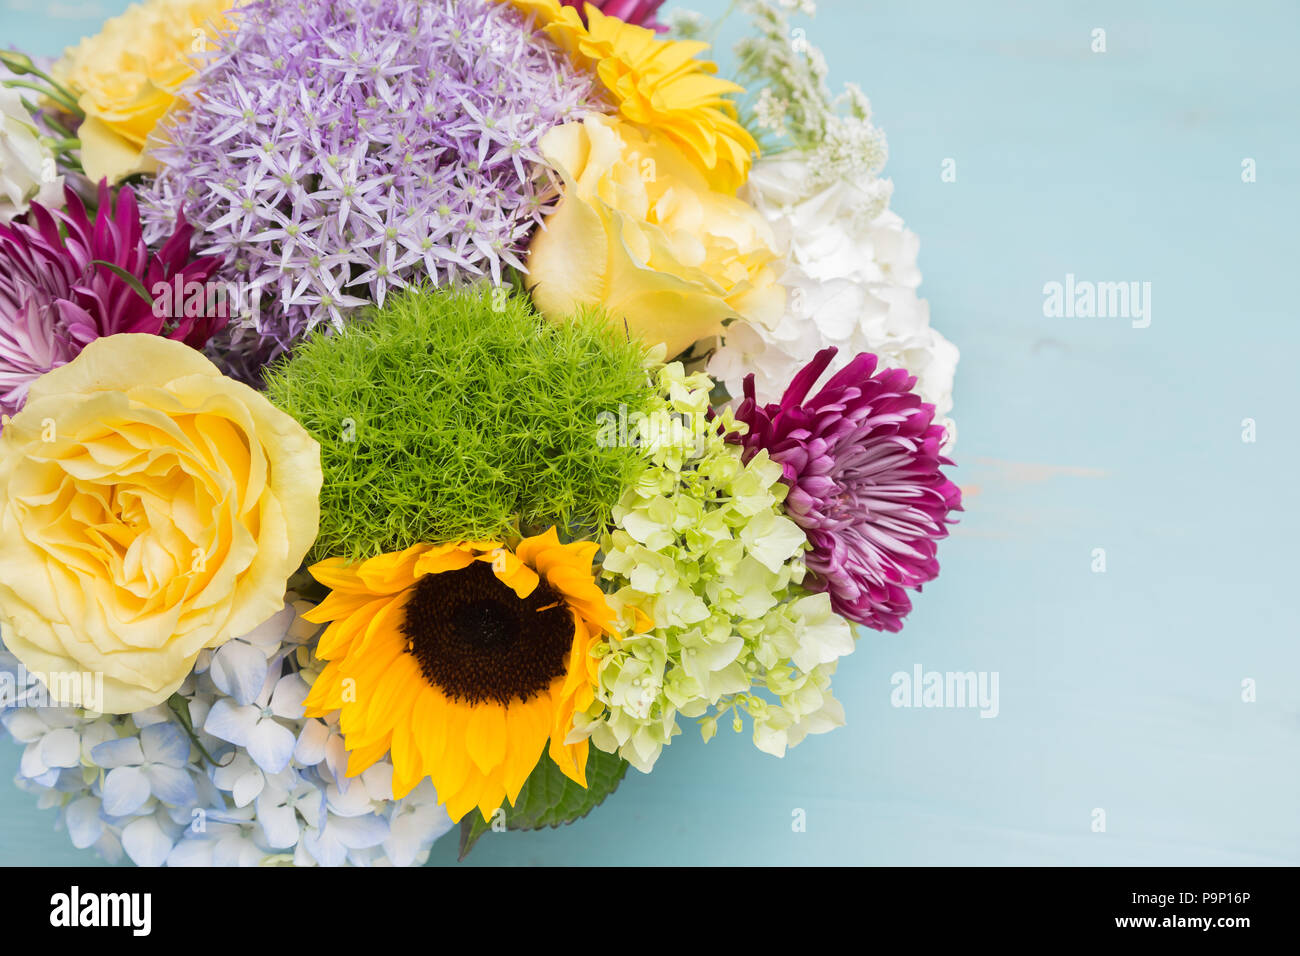 Beautiful Table Top Arrangement Of Many Different Types Of Flowers